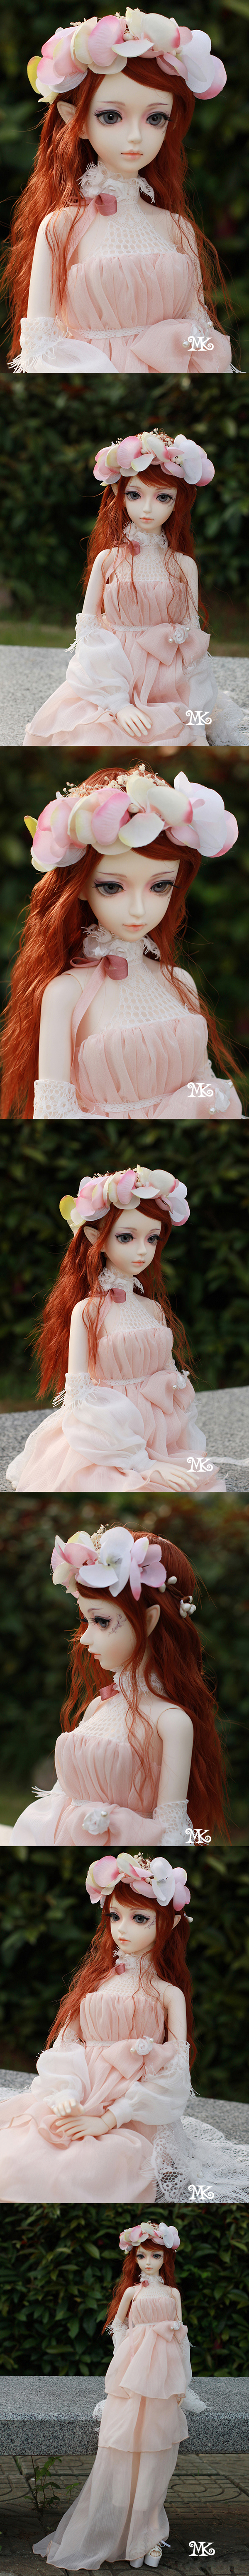 BJD Elisa elves 58cm Girl Ball-jointed doll